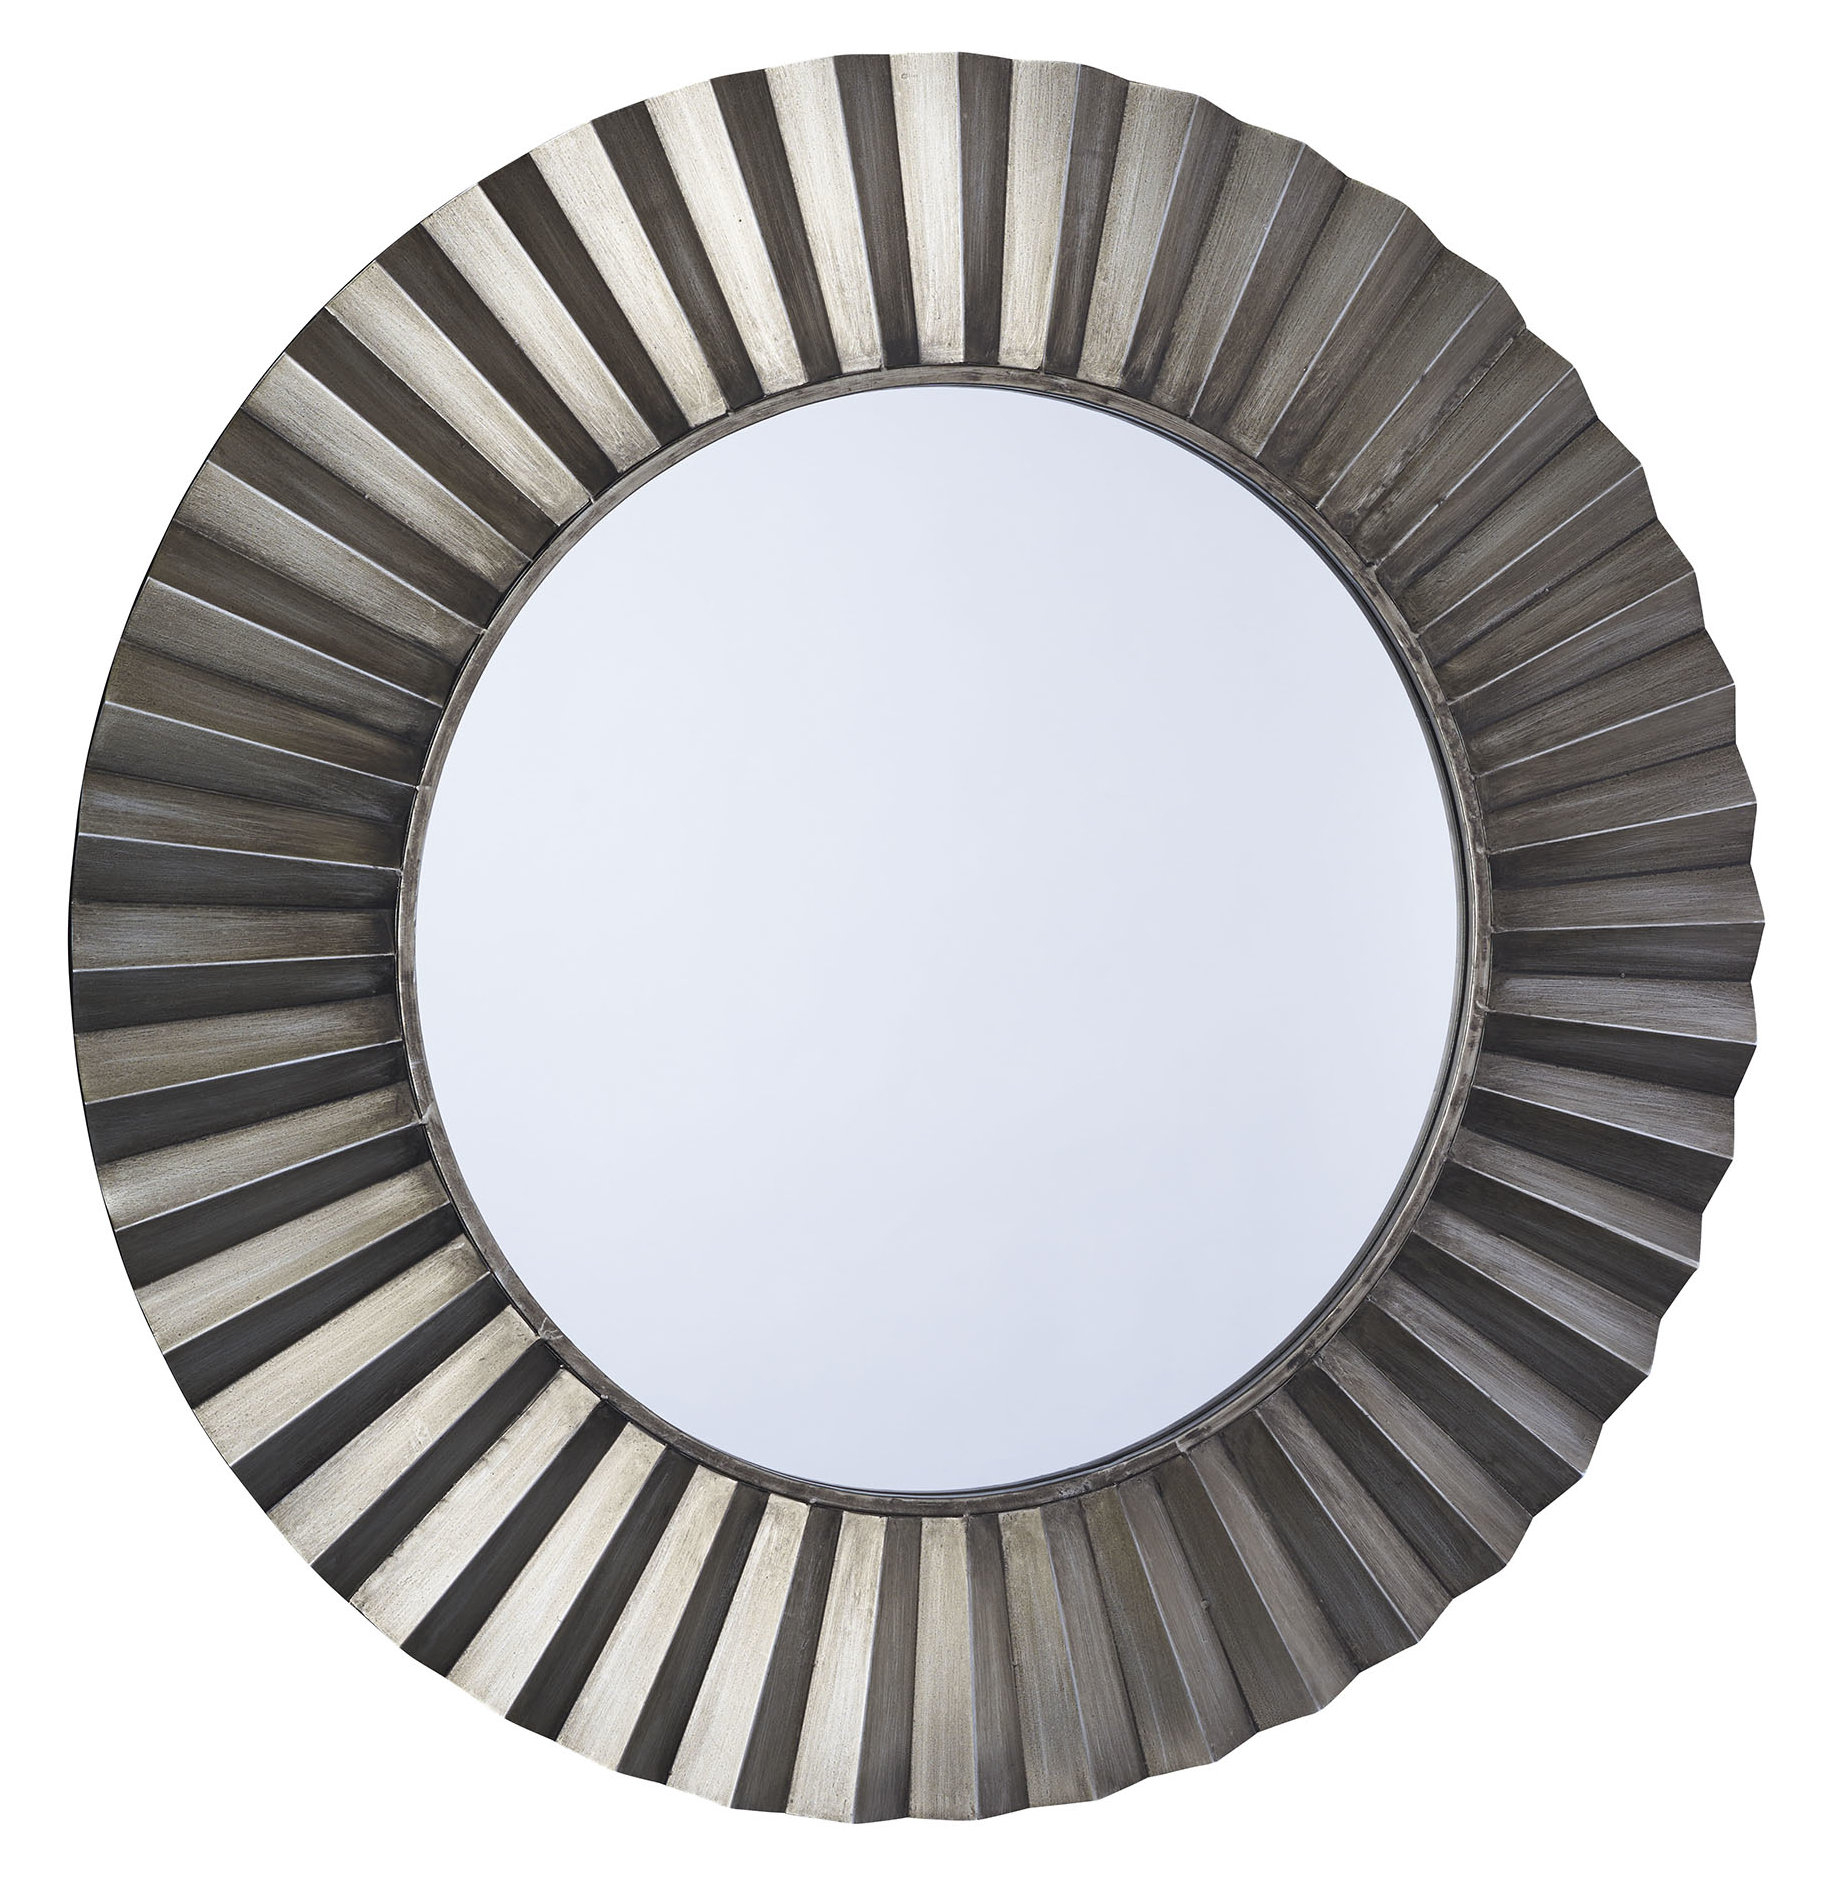 Sunburst Round Wall Mirror For Lidya Frameless Beveled Wall Mirrors (Image 18 of 20)